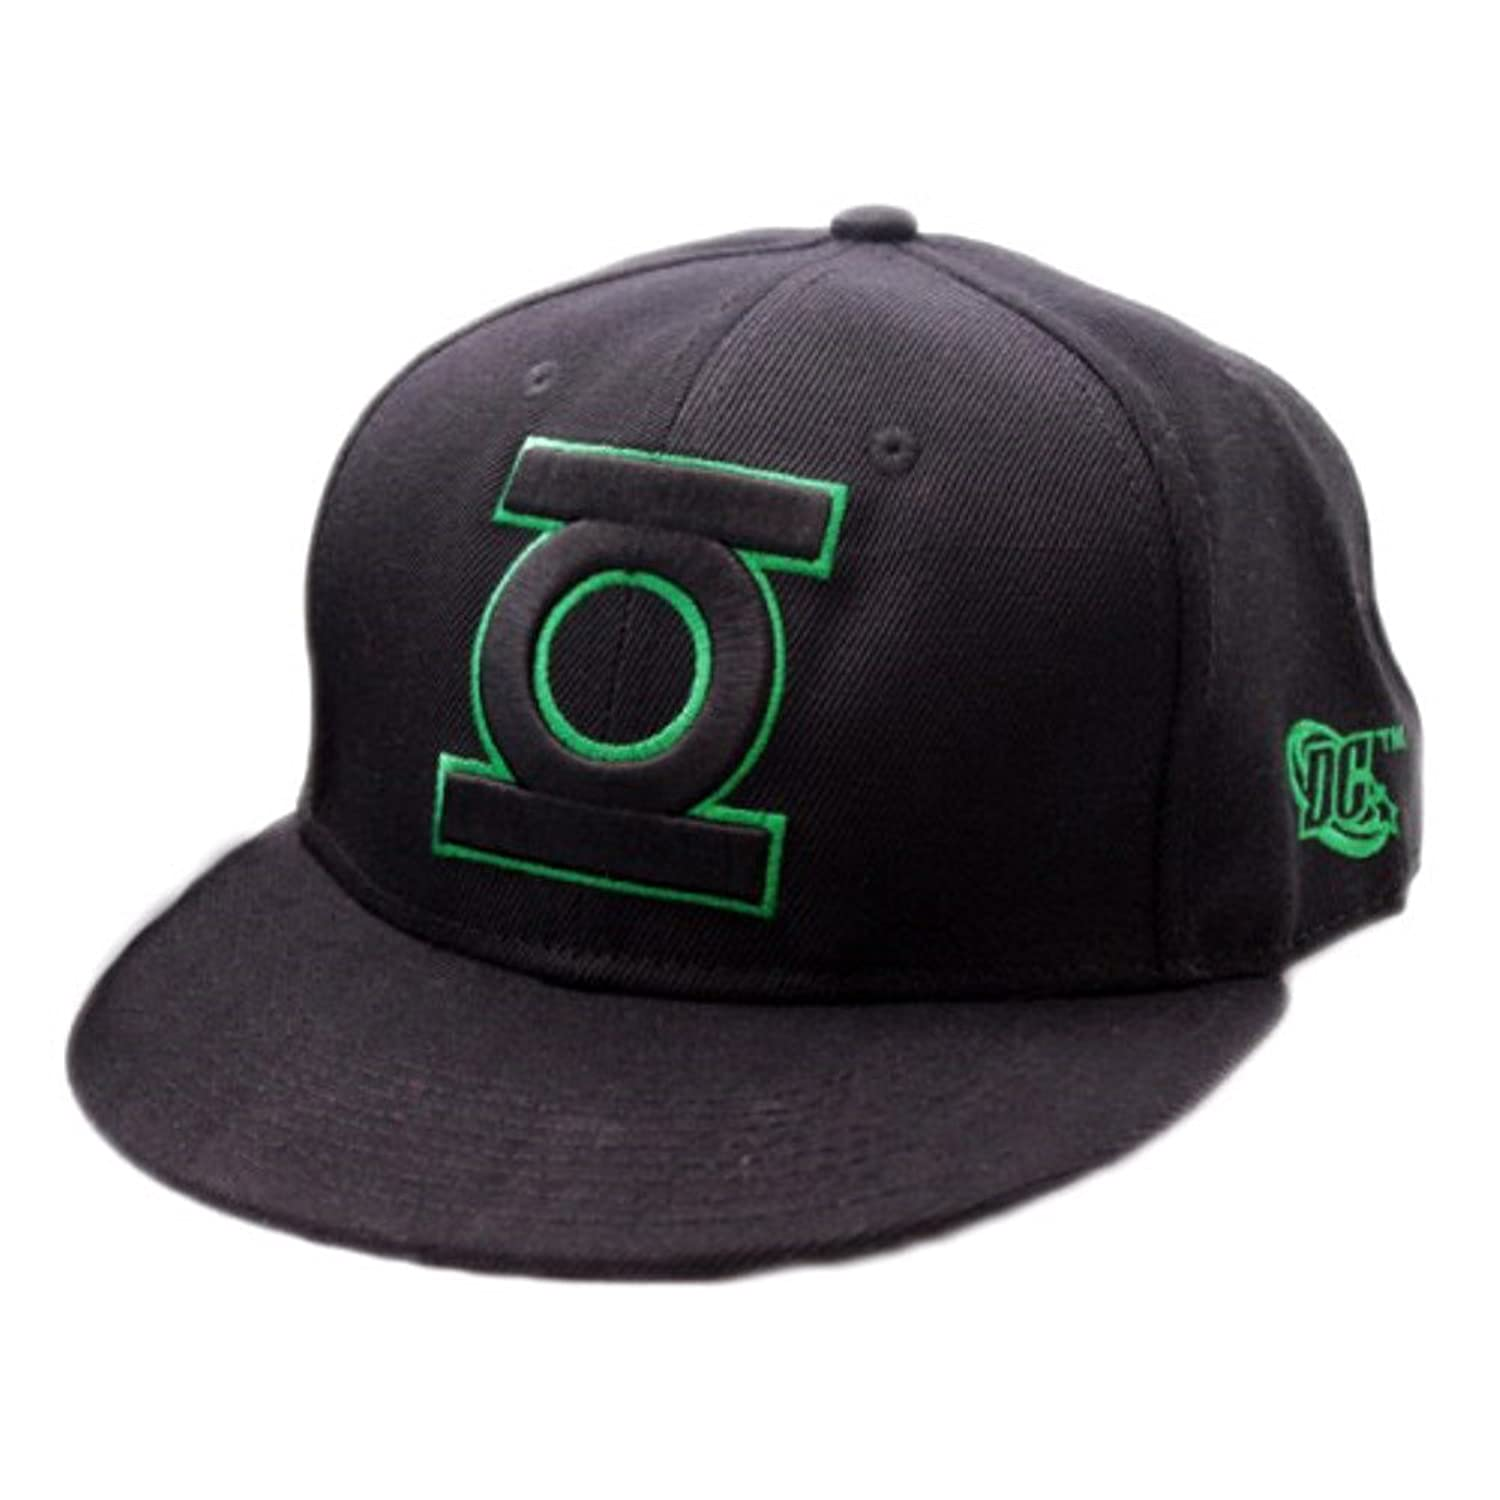 Official Green Lantern Logo Snapback Black Baseball Cap Hat 2017 black white new york baseball cap bone snapback cap brand baseball cap gorras new york black hats for men casquette hat wo